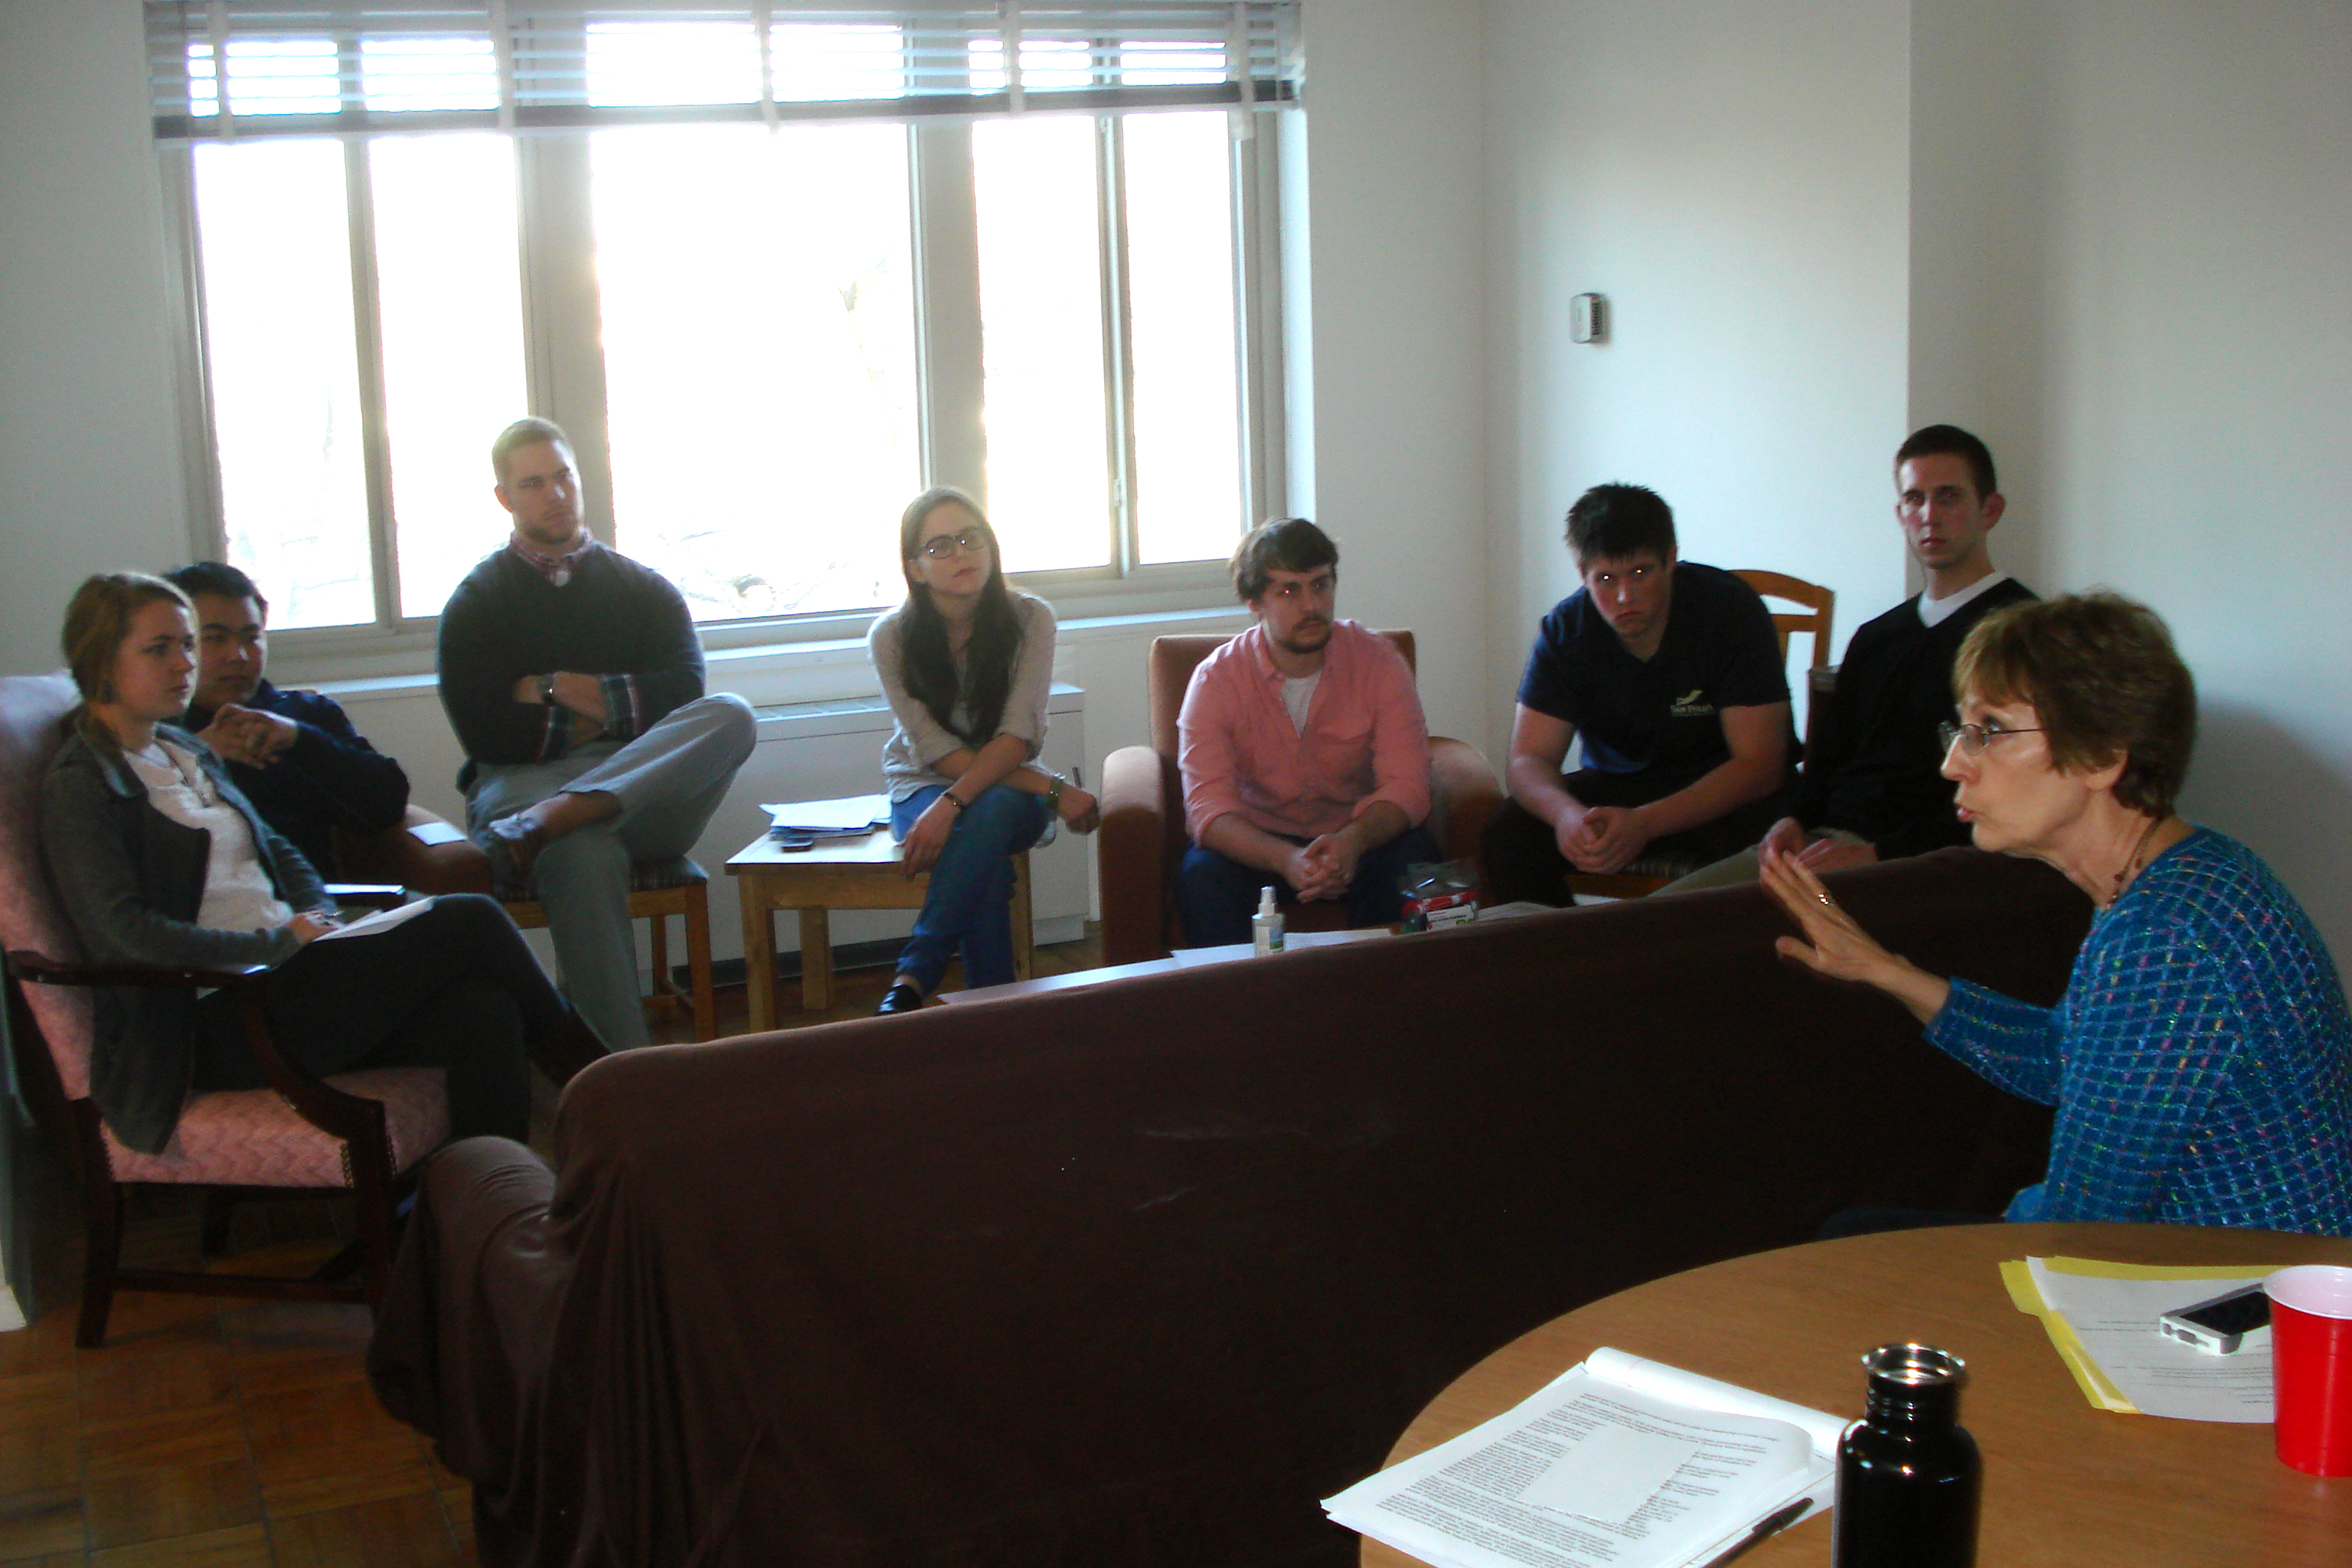 Prudence Bushnell meets with Washington Program students.